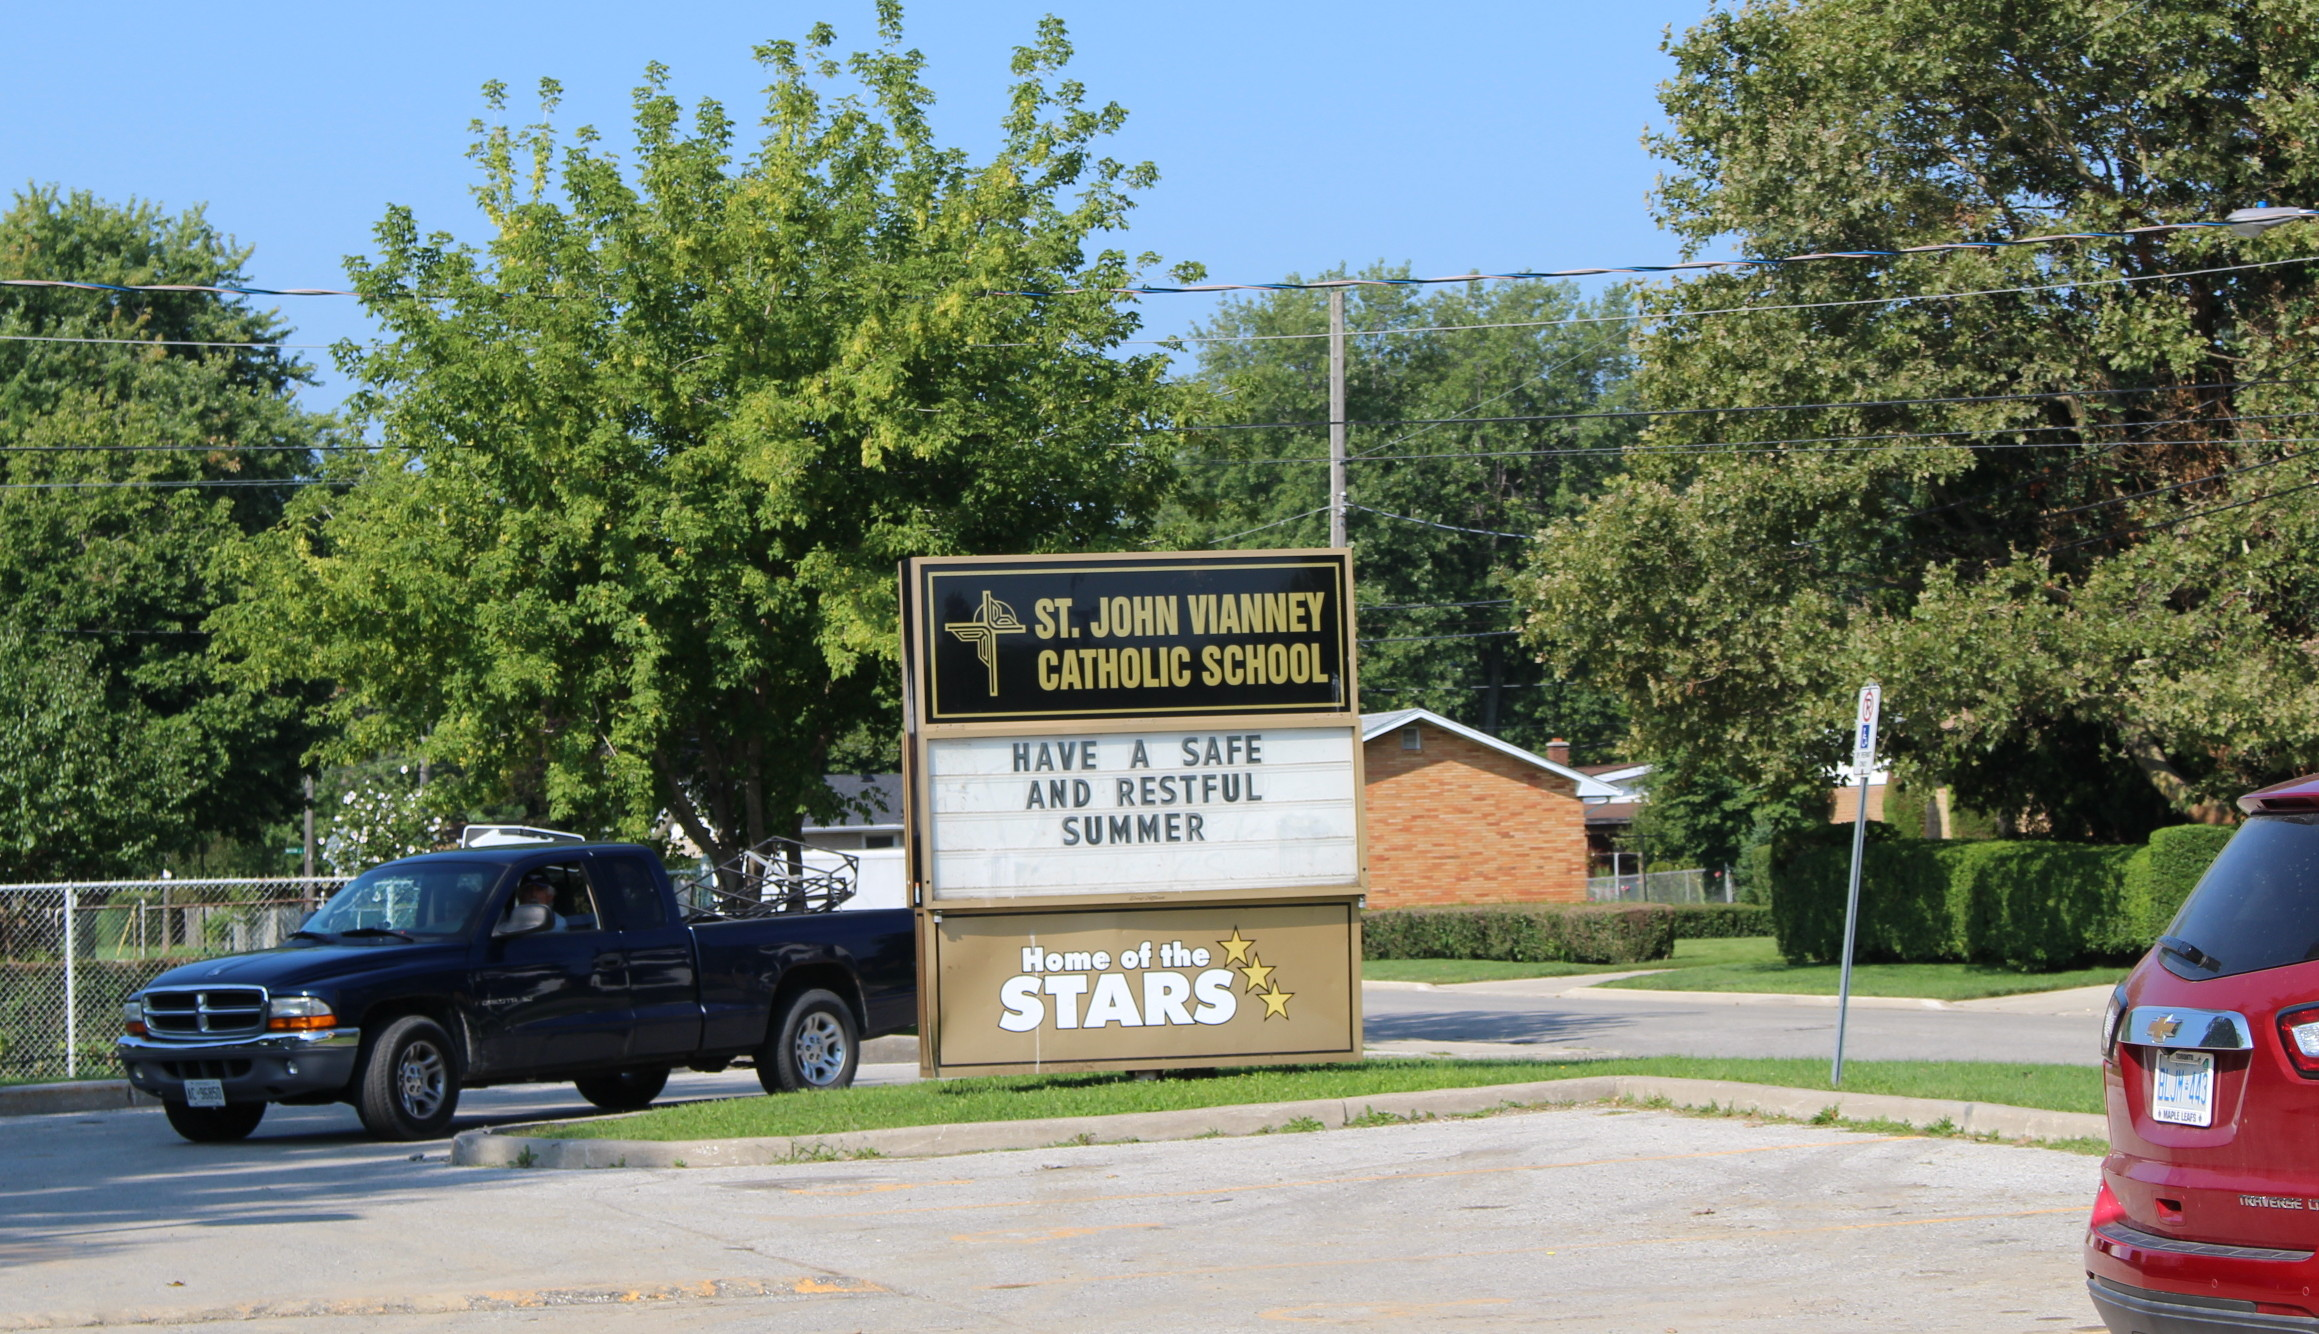 St. John Vianney Catholic School in Windsor, August 25 2014. Photo by Adelle Loiselle.)